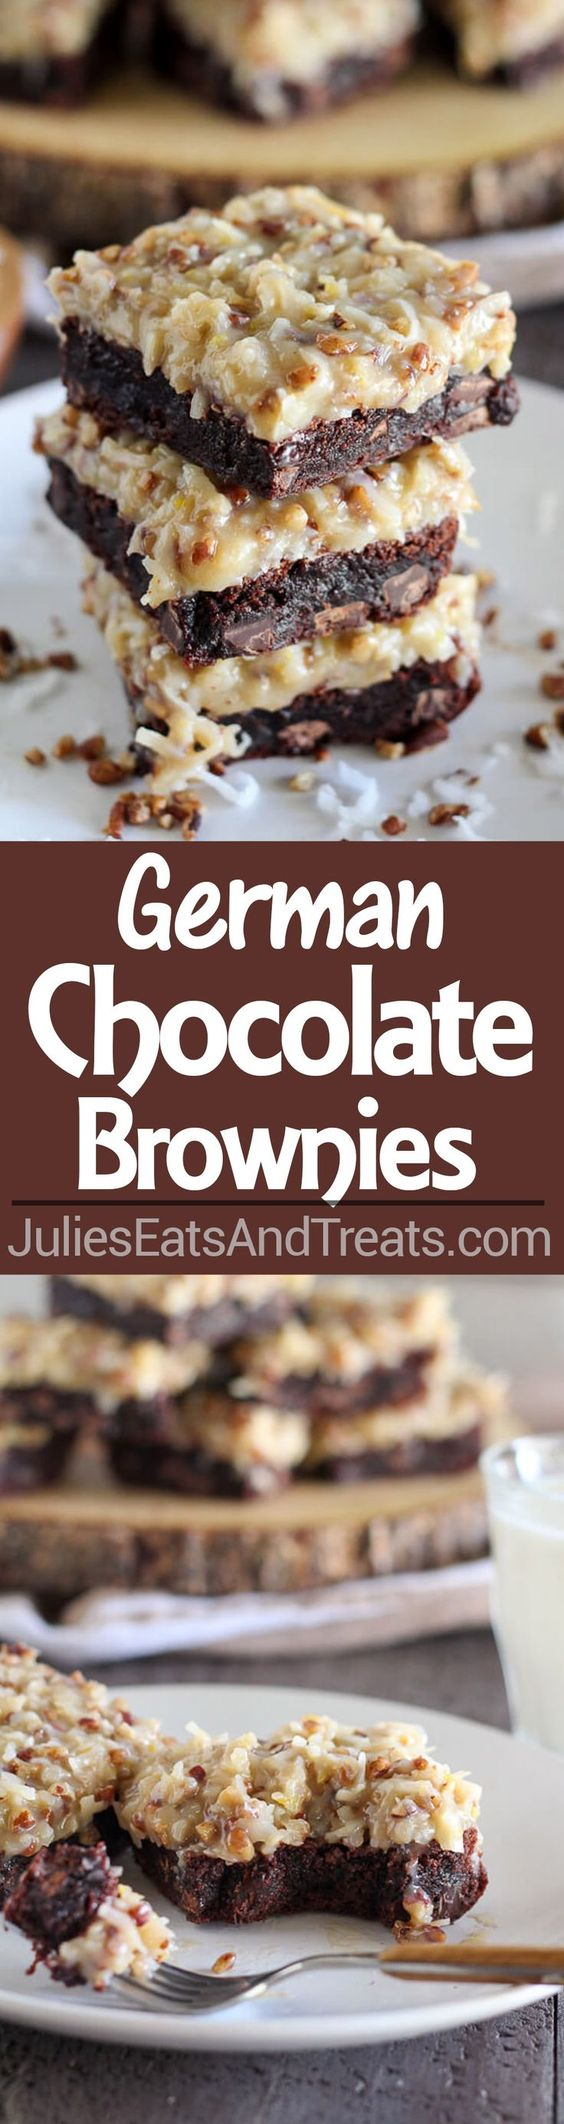 German Chocolate Brownies Recipe ~ Rich chocolaty brownies topped with a gooey homemade coconut pecan frosting. Make the brownies from scratch, or use a boxed brownie mix as the base of this recipe. You'll love this decadent dessert!